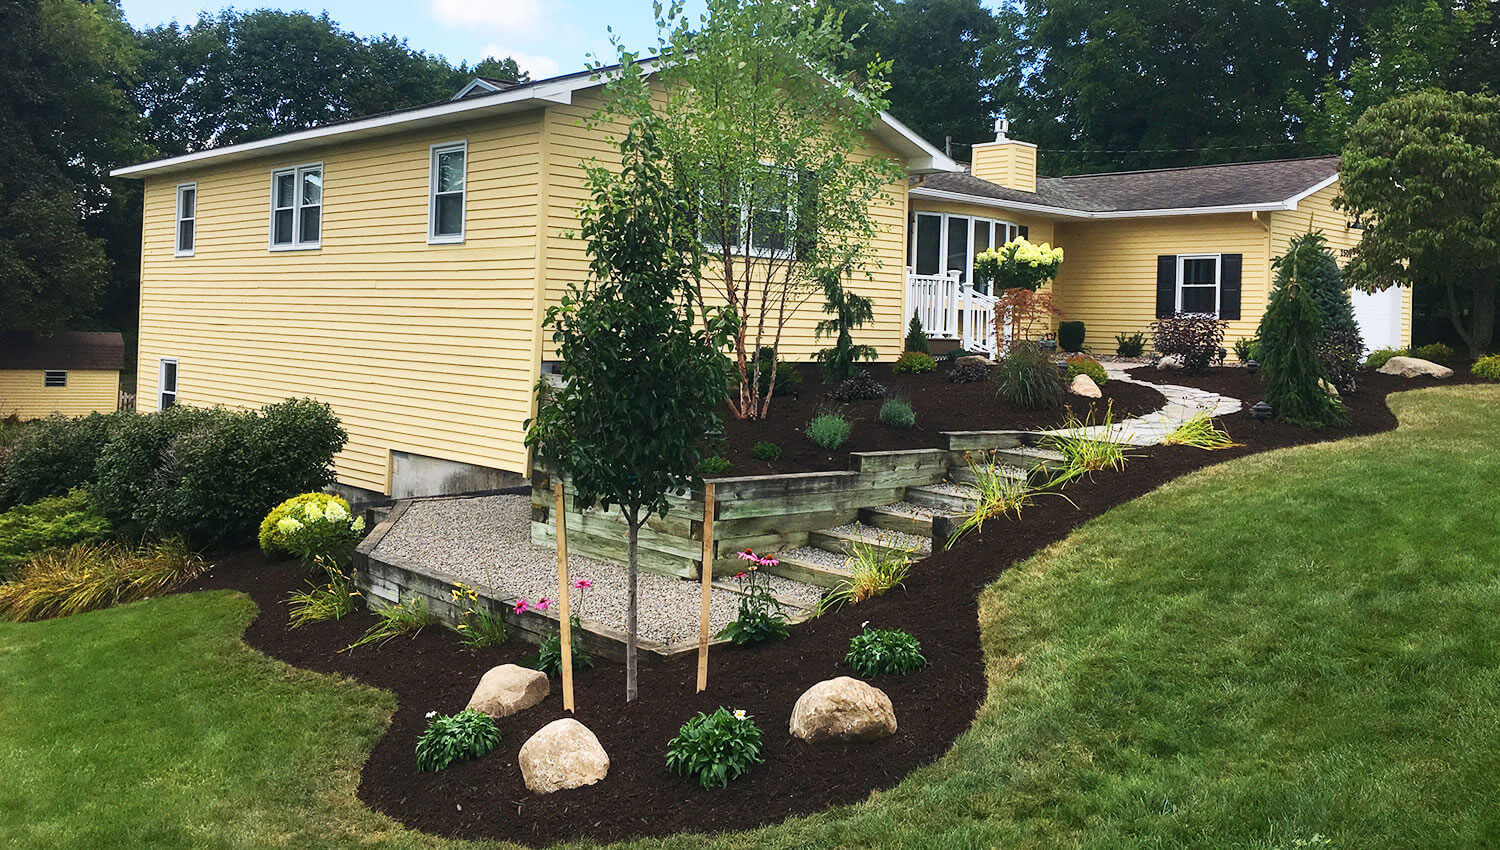 Outdoor Landscape Design-Plano TX Professional Landscapers & Outdoor Living Designs-We offer Landscape Design, Outdoor Patios & Pergolas, Outdoor Living Spaces, Stonescapes, Residential & Commercial Landscaping, Irrigation Installation & Repairs, Drainage Systems, Landscape Lighting, Outdoor Living Spaces, Tree Service, Lawn Service, and more.